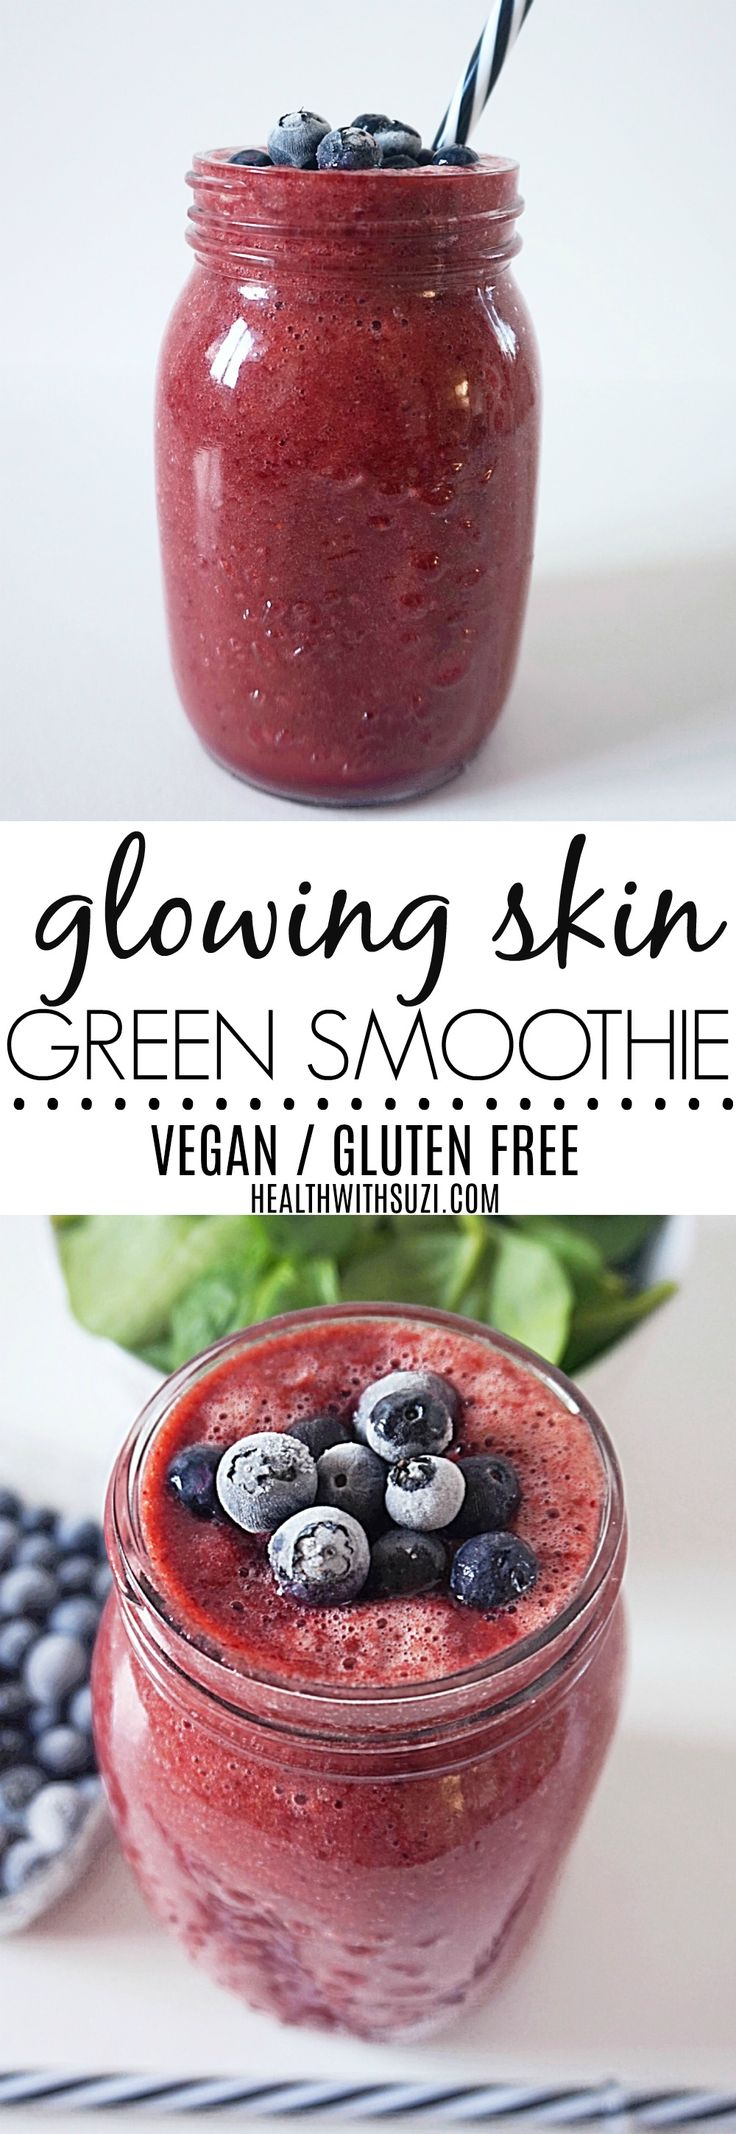 I love this smoothie so much! It tastes amazing and it's so good for your hair, skin and nails! I'm pinning it so I can refer back to the recipe anytime!